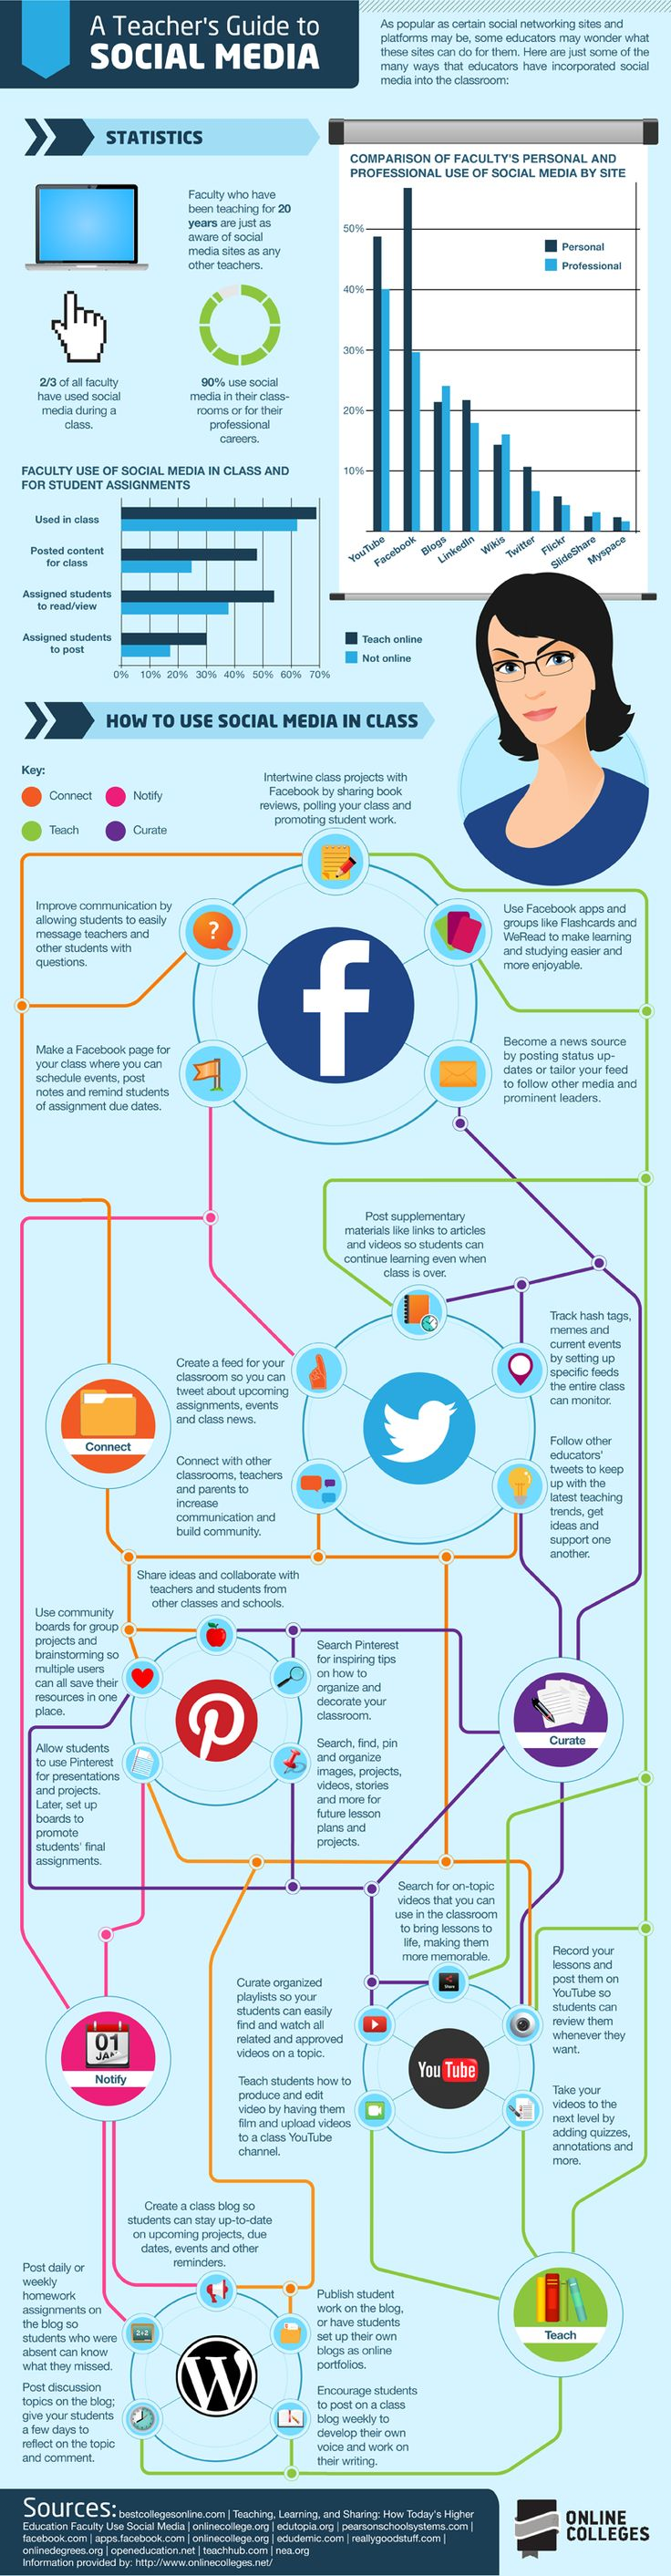 Infographic: A Teacher's Guide to Social Media